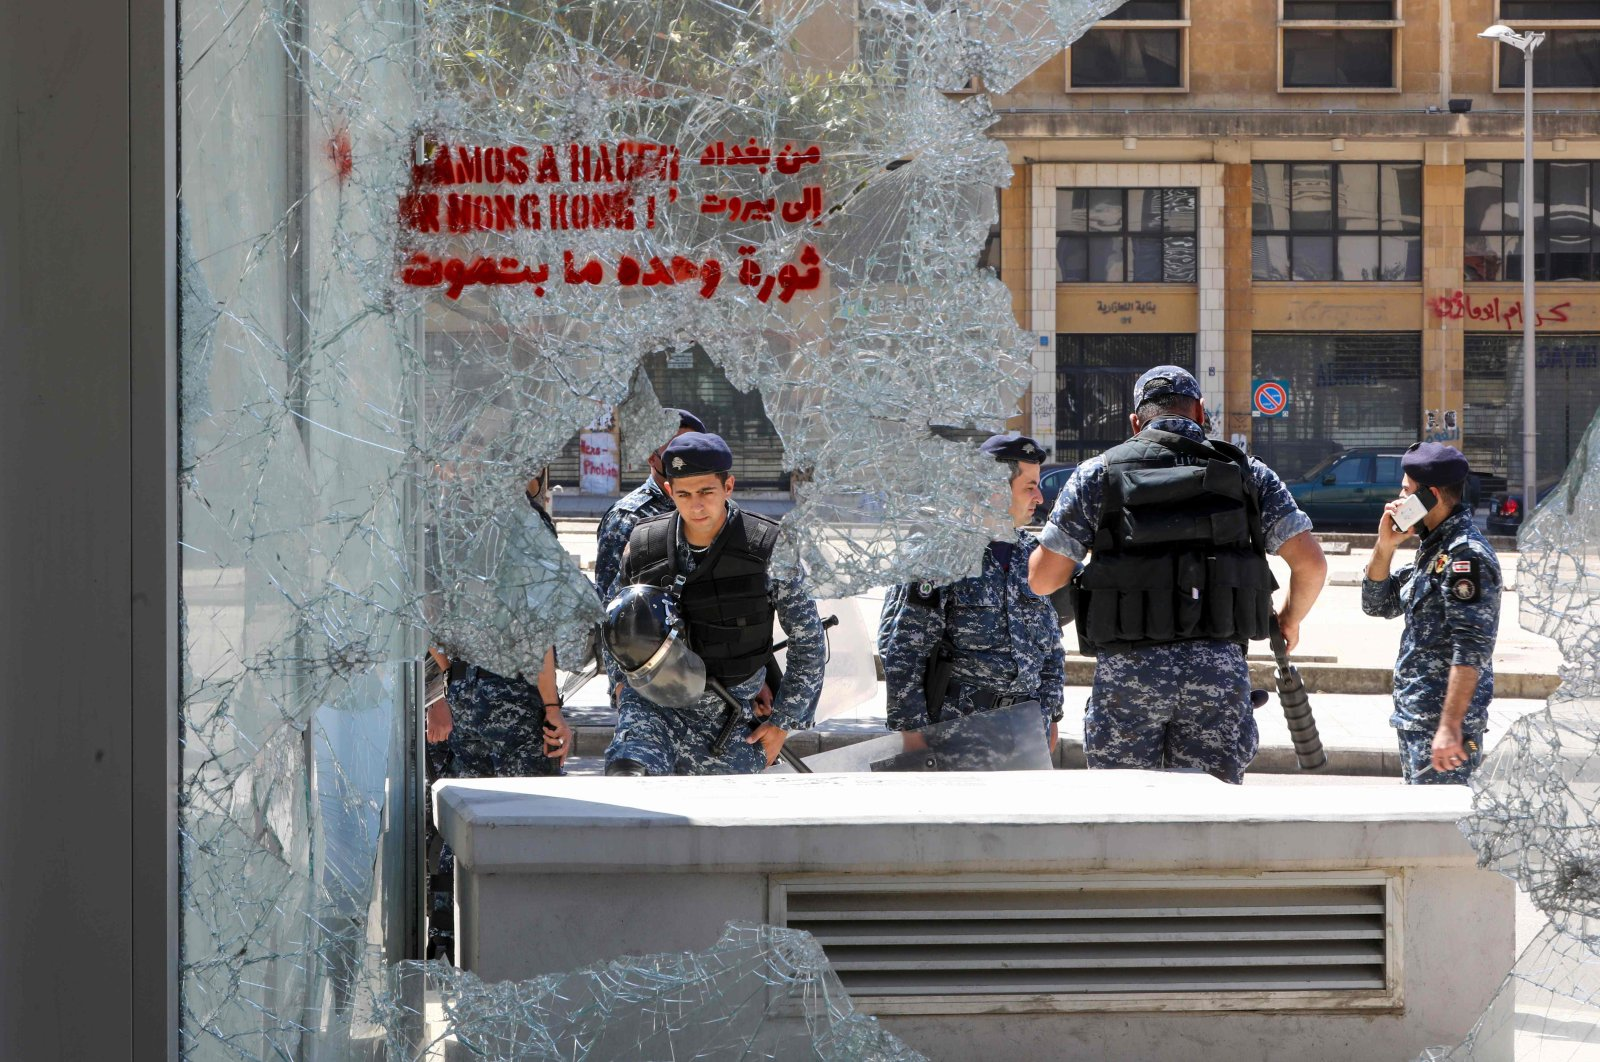 Members of the Lebanese security forces are seen through a broken store window in the downtown area of the capital Beirut, during an anti-government demonstration marking International Workers' Day (Labour Day), on May 1, 2020. (AFP Photo)